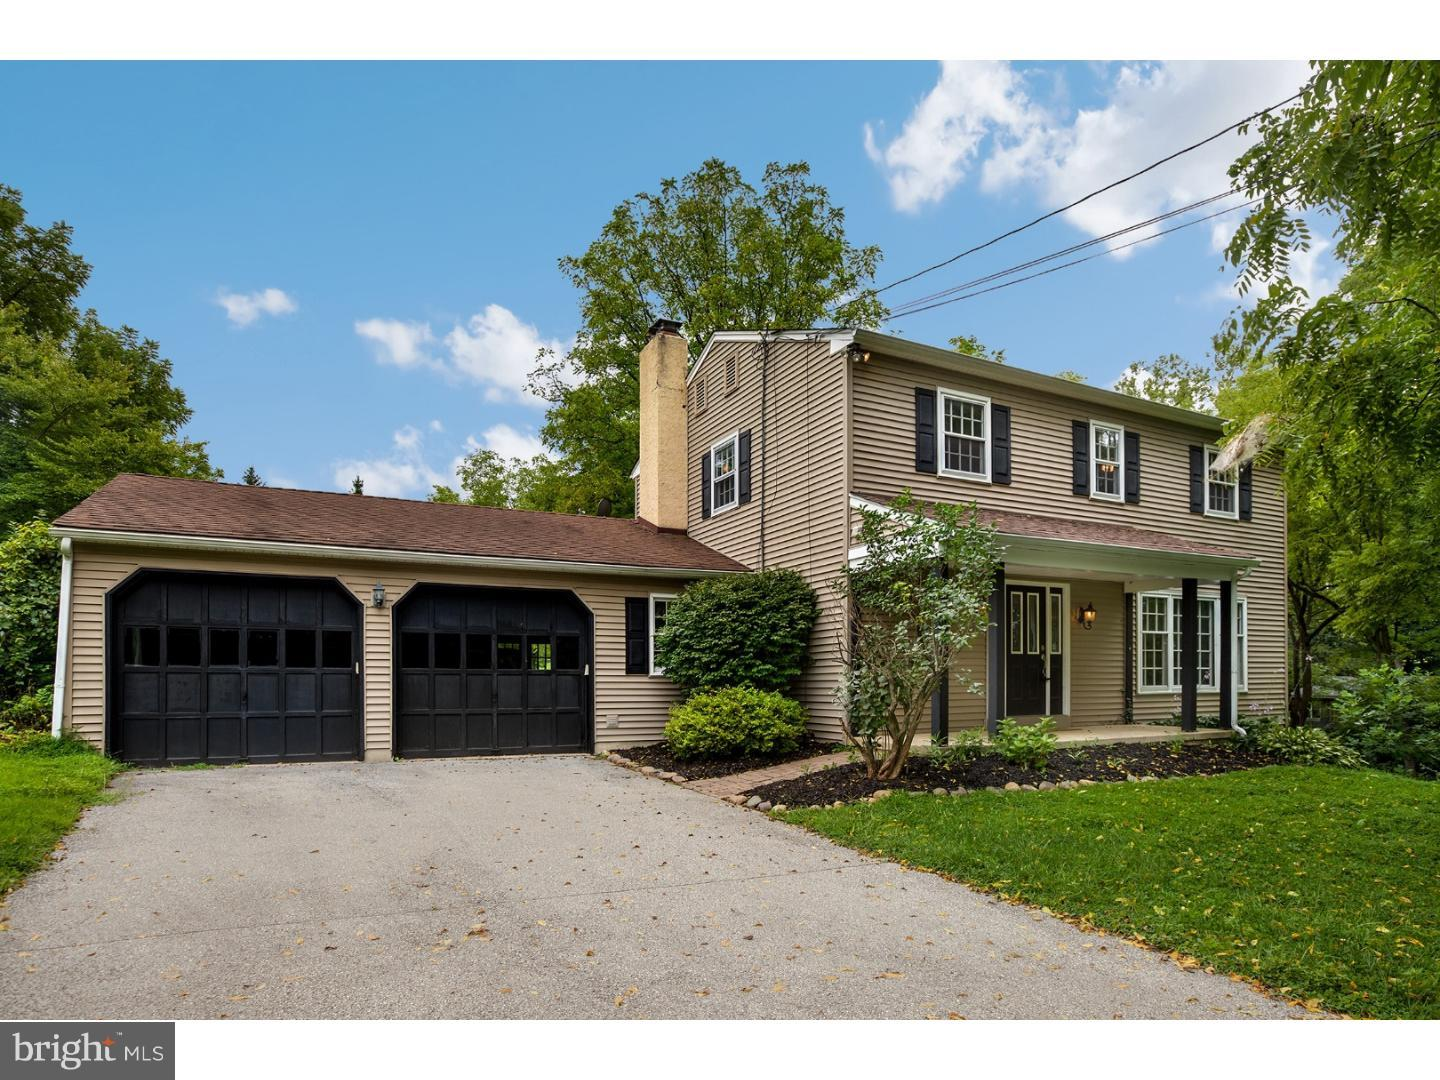 kennett square jewish singles The movoto advantage movoto gives you access to the most up-to-the-minute single family home information in kennett square as a licensed brokerage in pennsylvania (and across the united states), movoto has access to the latest real estate data including single family homes, condos/townhouses, open houses, new listings, price reduced homes, recently bought homes, market trends, homes with a.